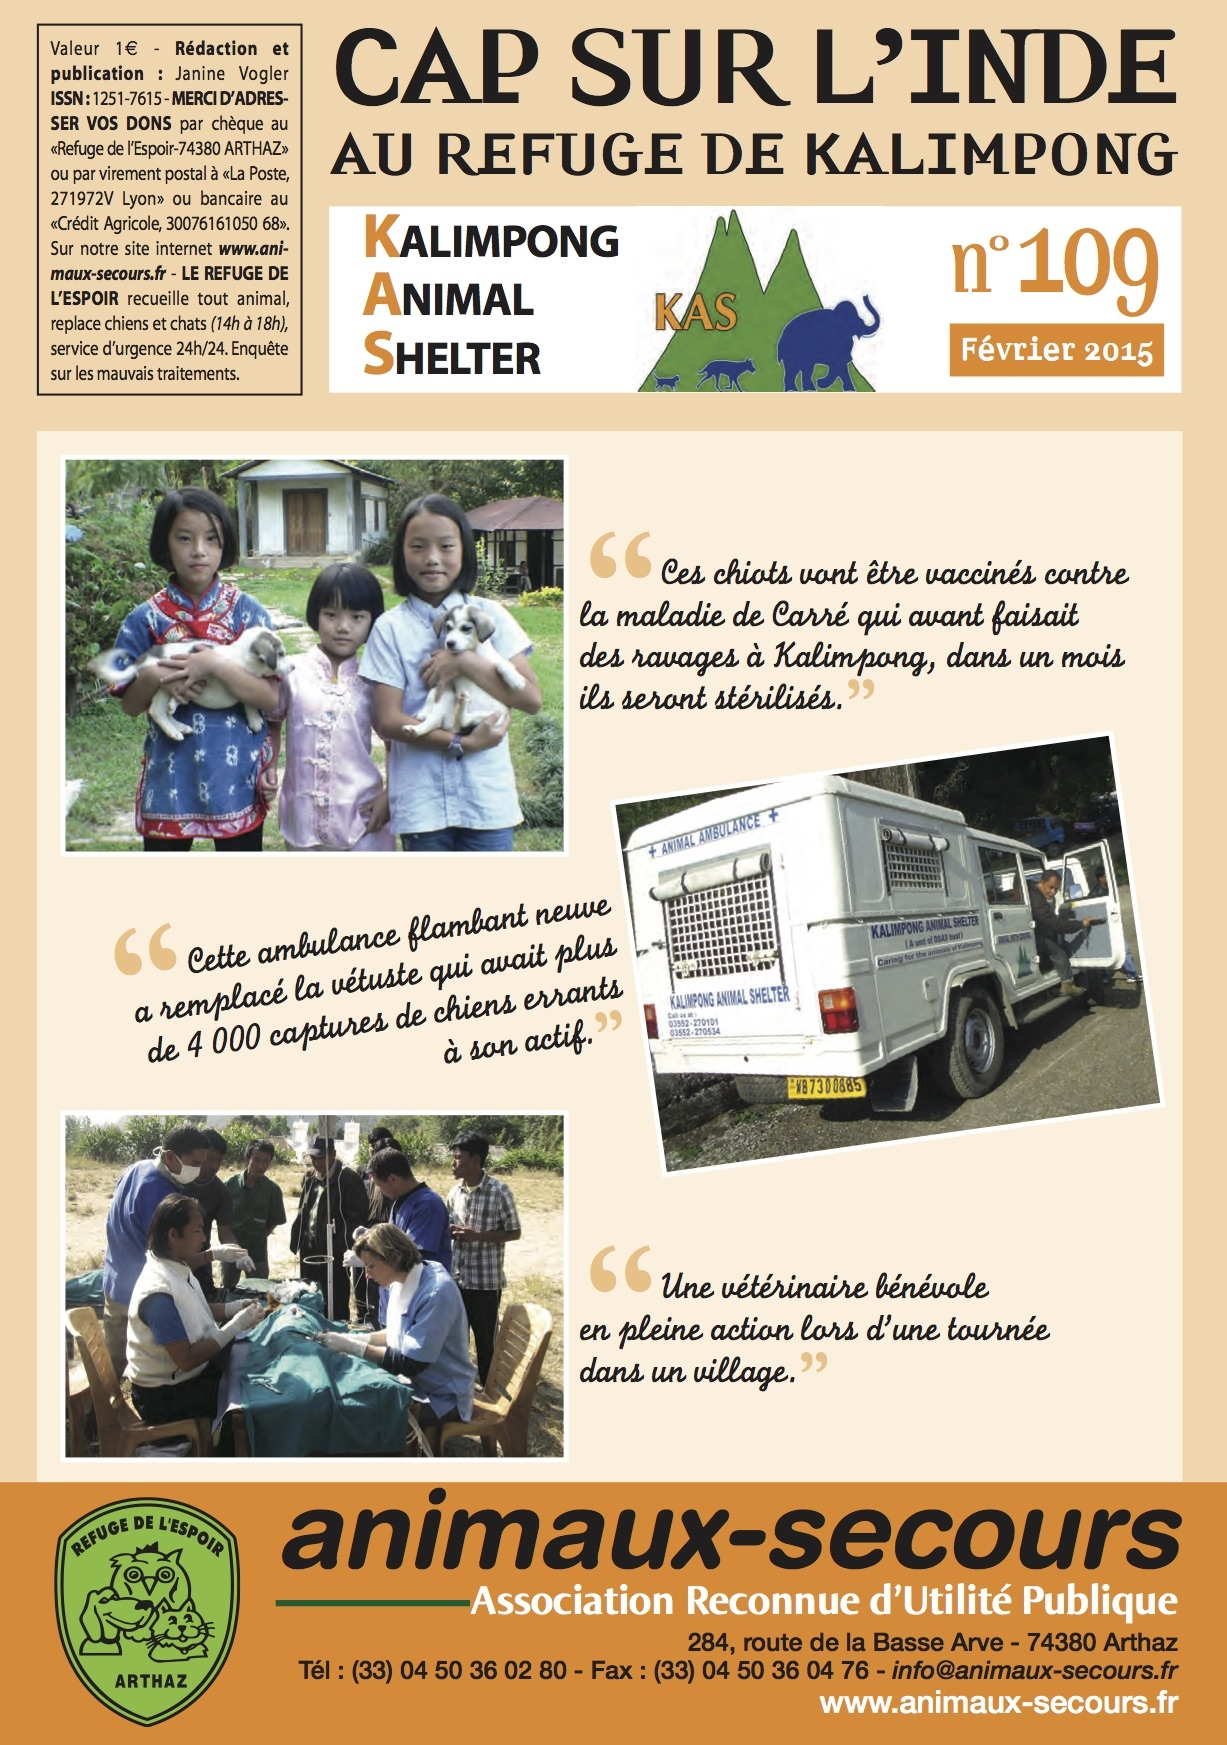 Newsletter N109 Février 2015 Animaux-Secours